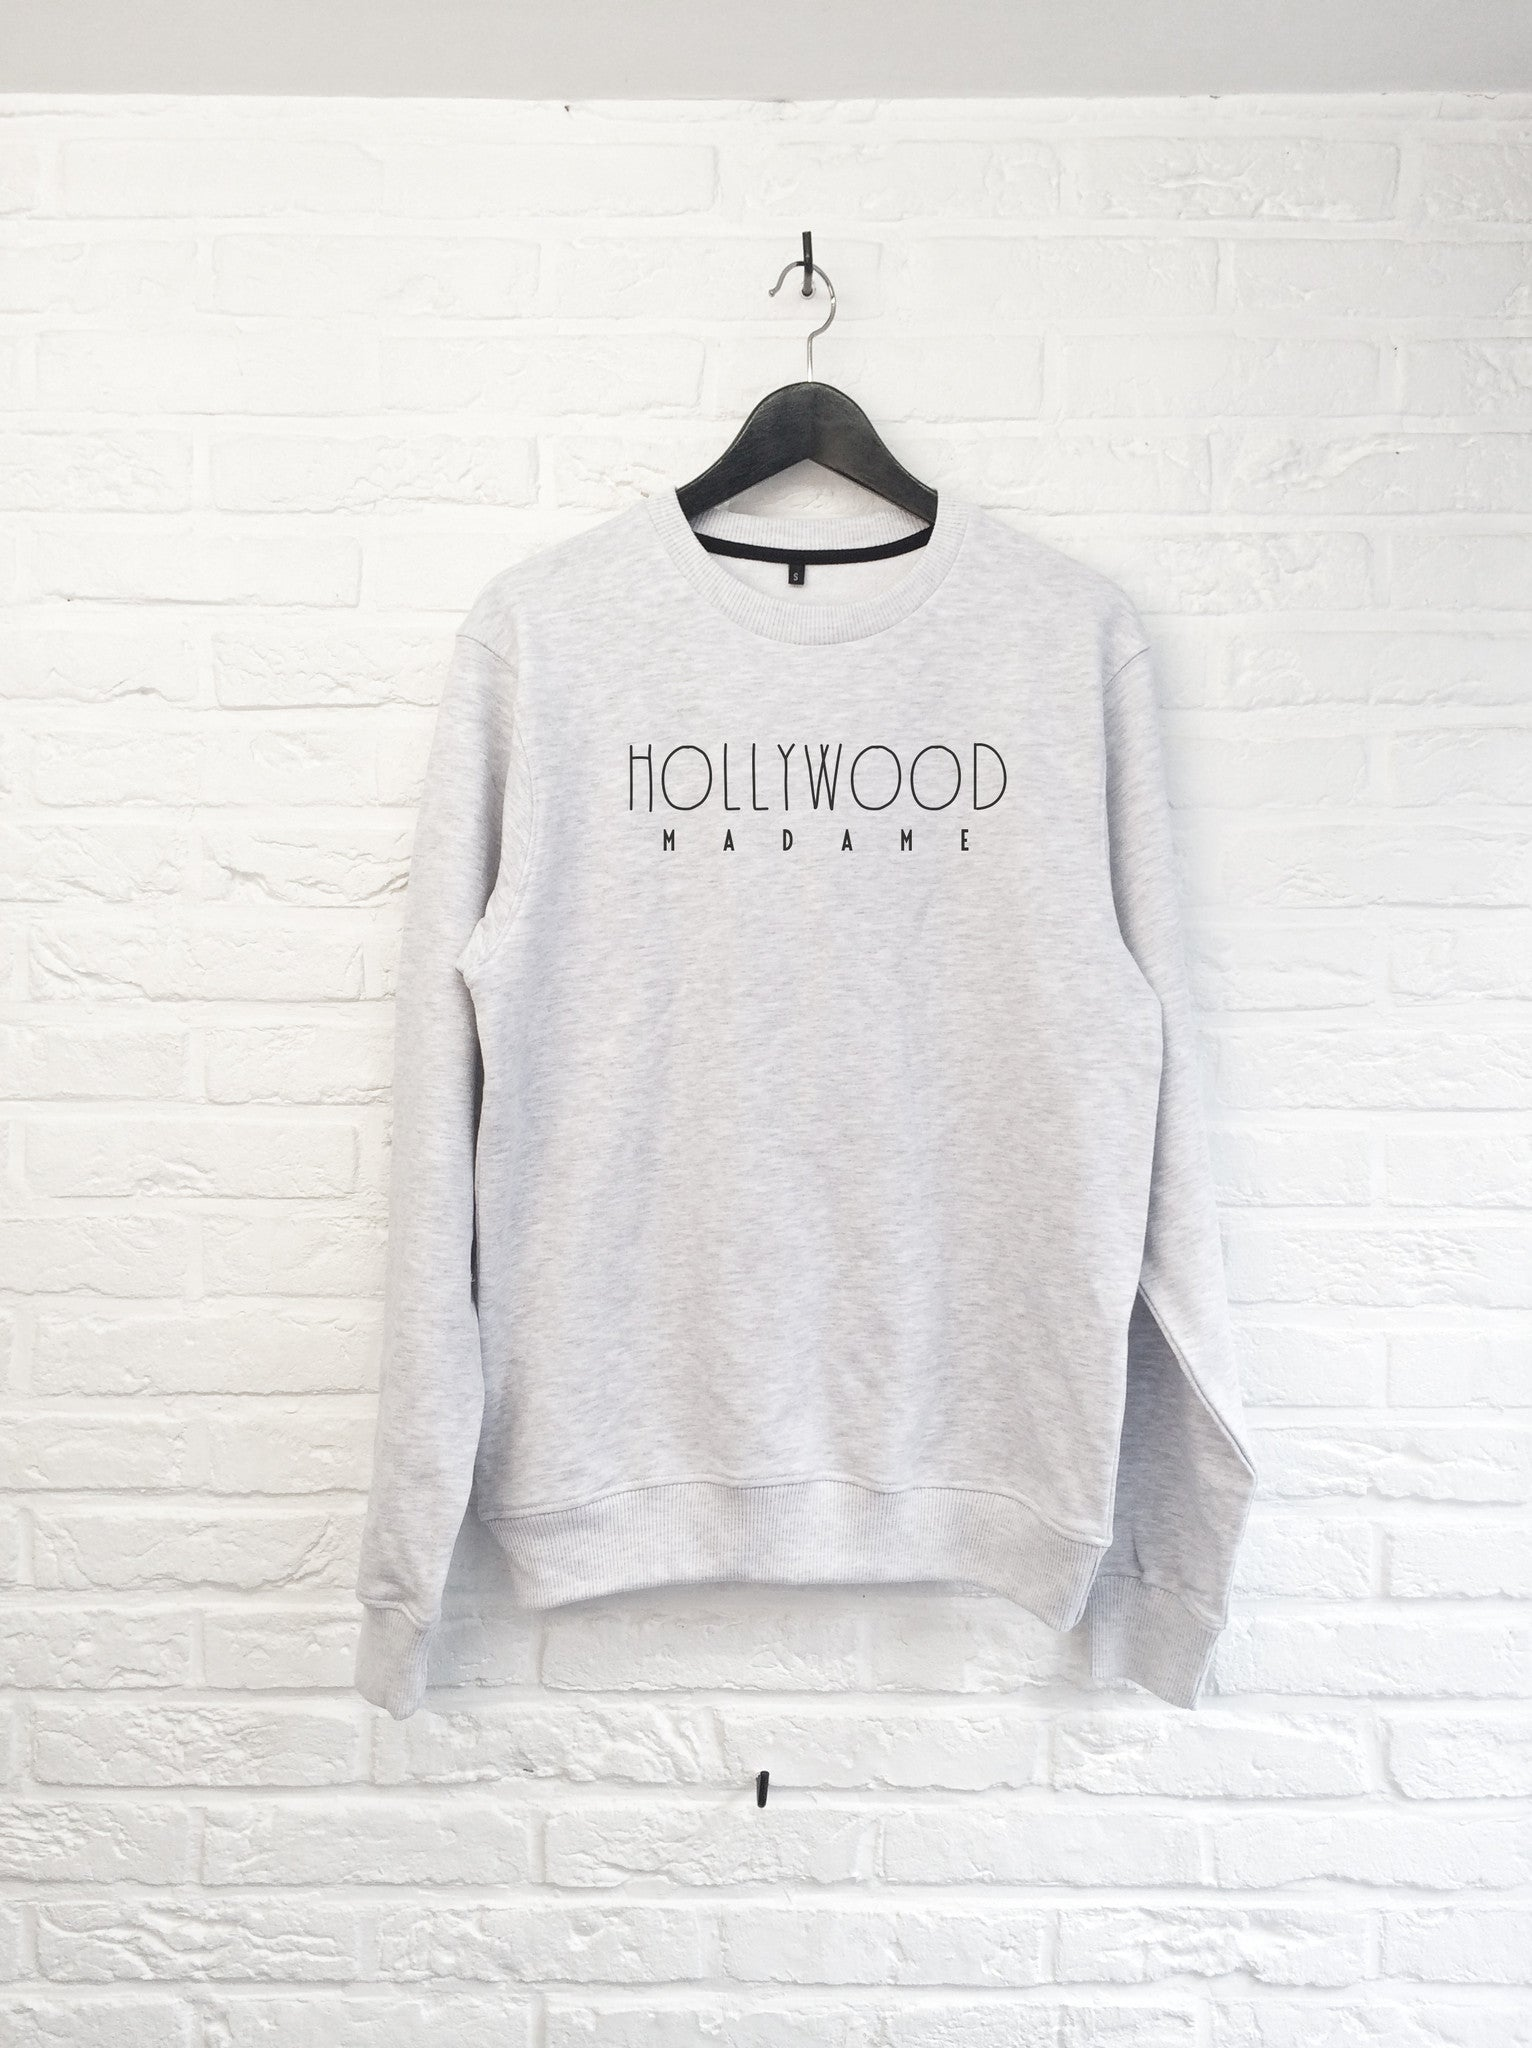 hollywood madame - sweat – atelier amelot